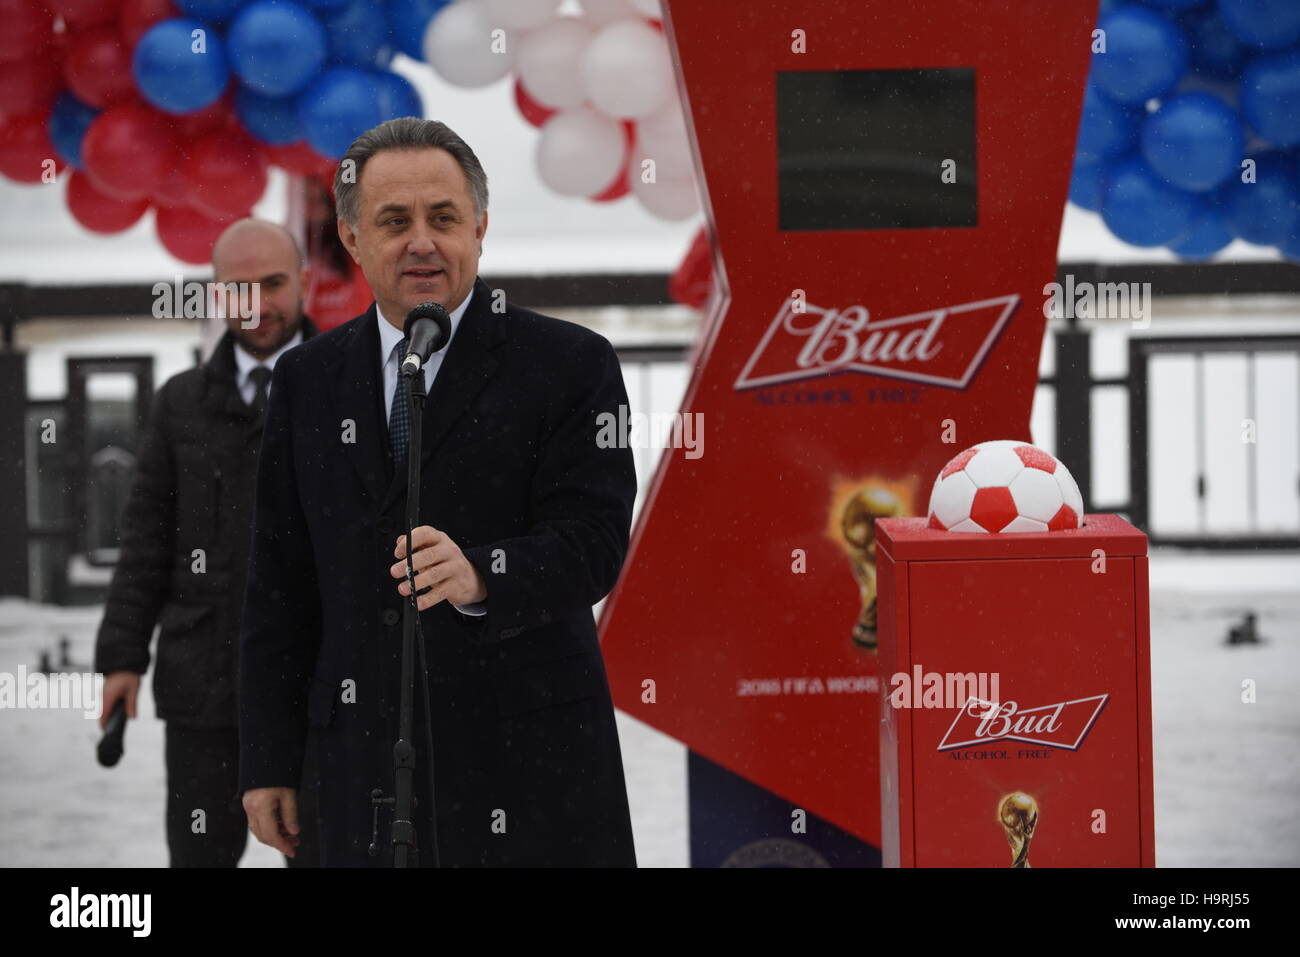 Kazan, Russia. 26th Nov, 2016. Russian Deputy Prime Minister Vitaly Mutko delivers a speech during the opening ceremony - Stock Image